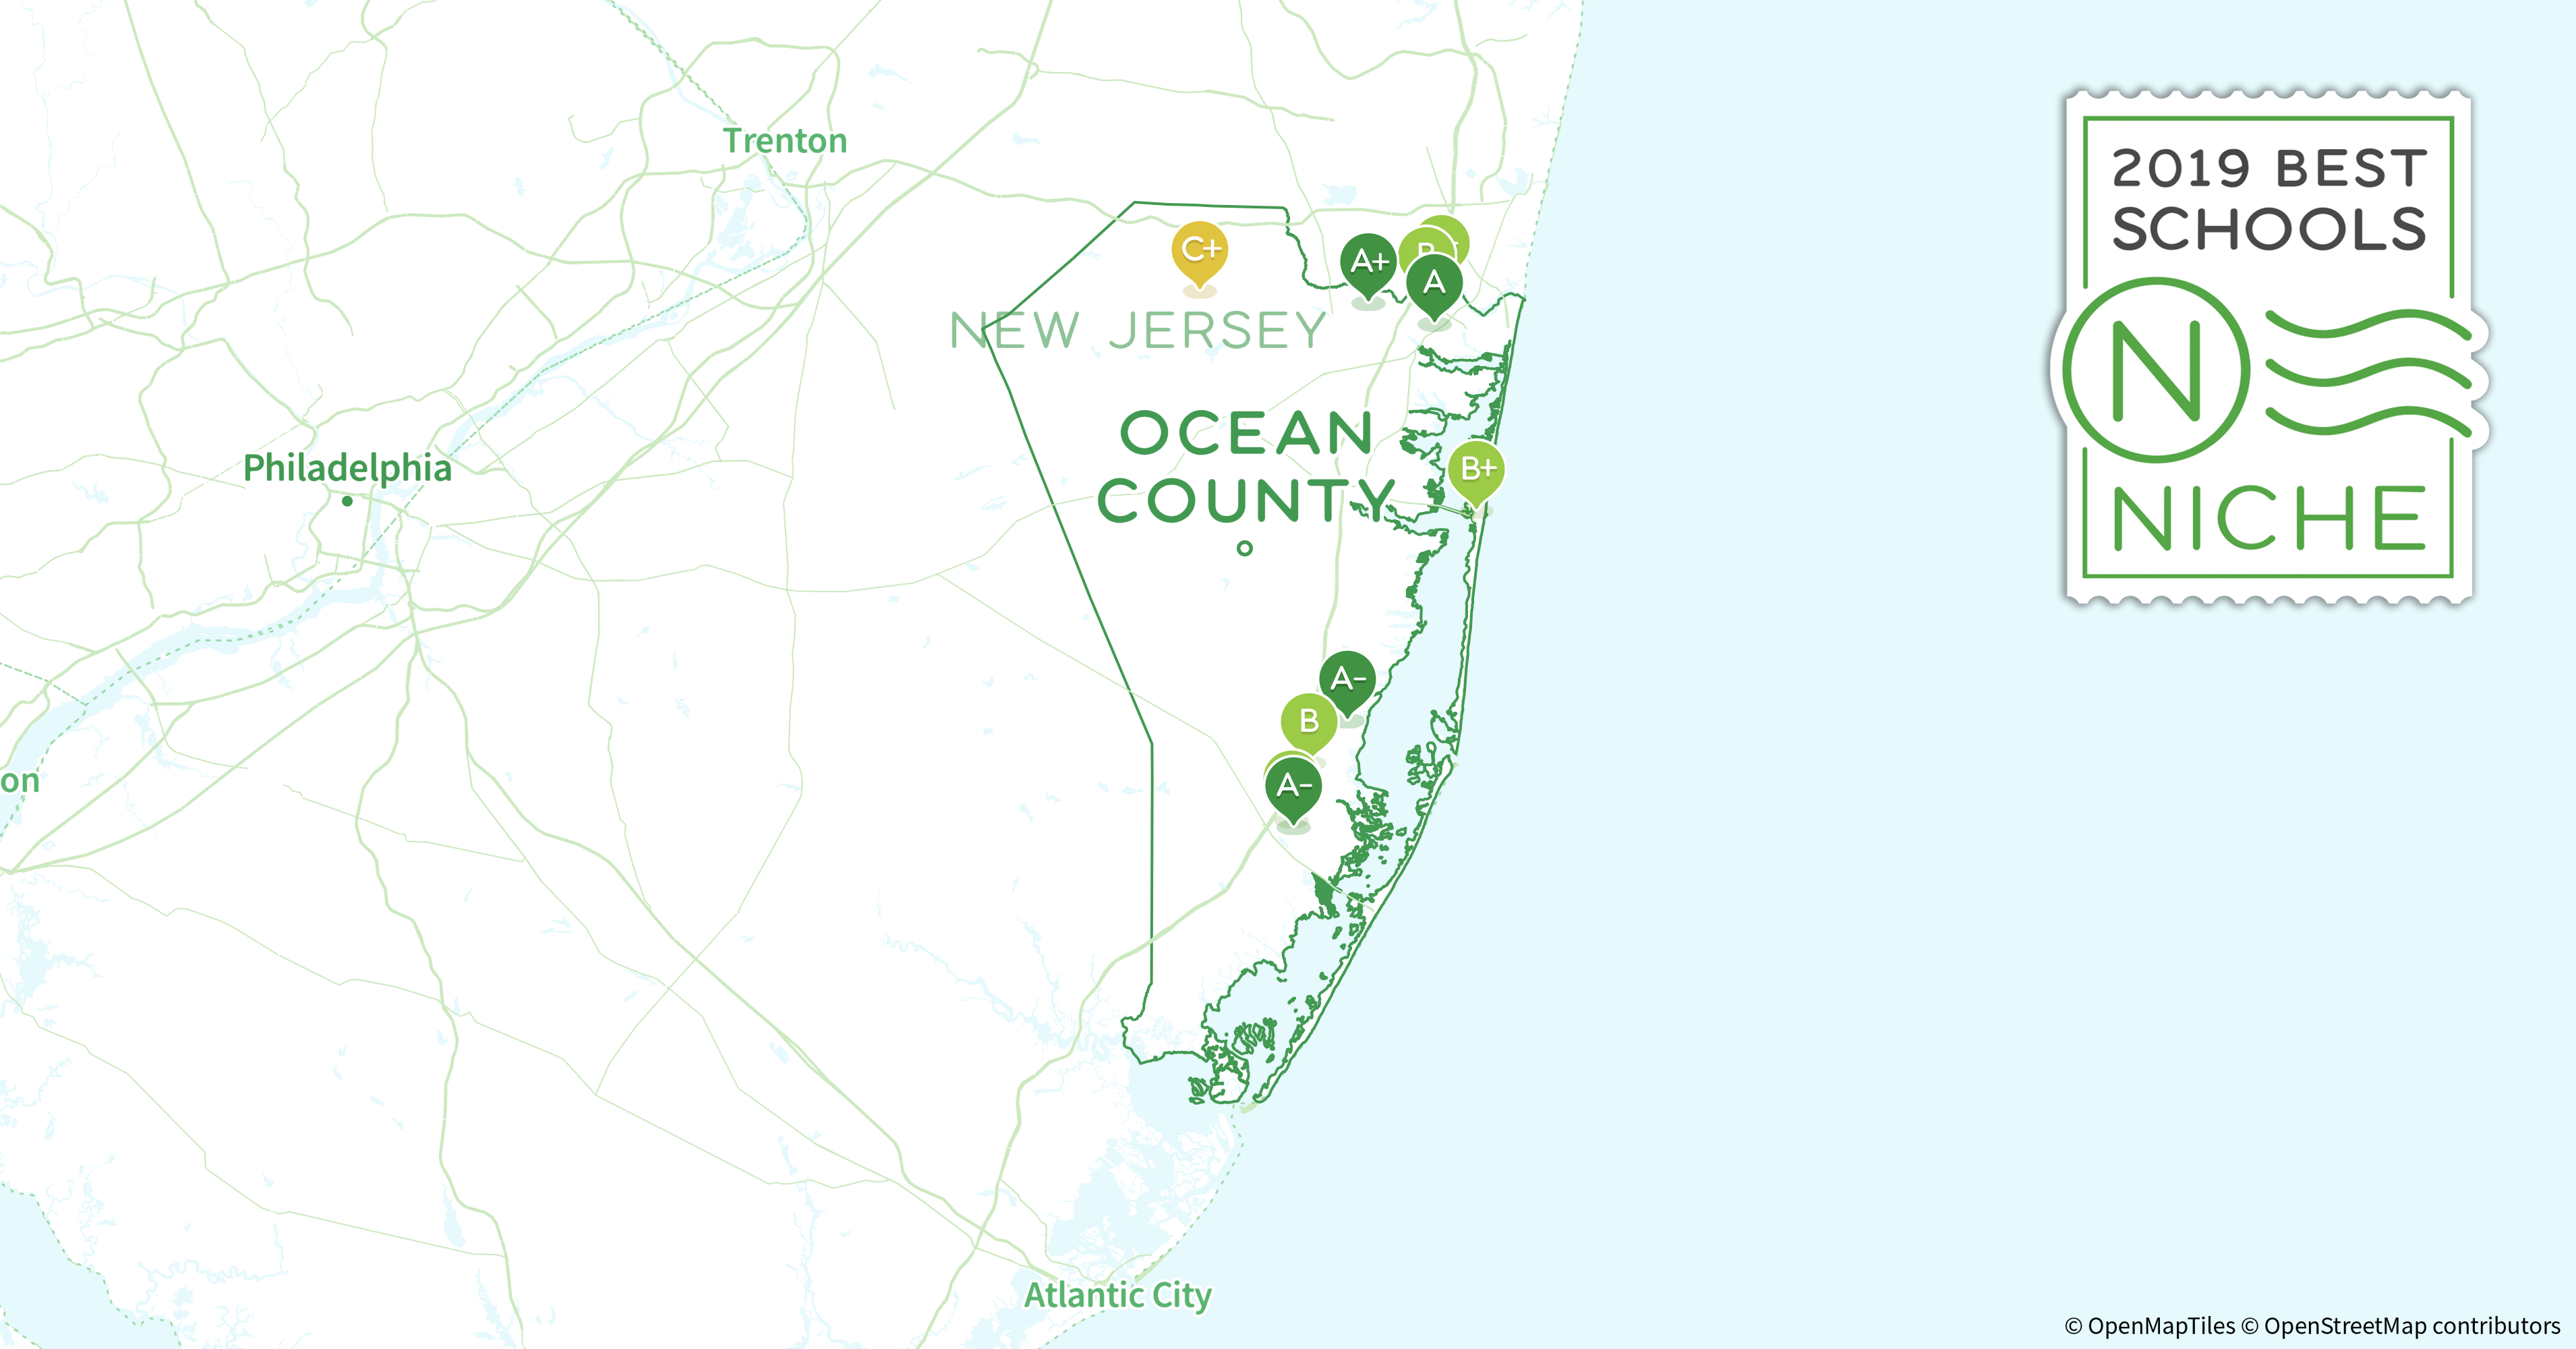 2019 Best Places to Teach in Ocean County, NJ - Niche Ocean County Nj Map on hunterdon county, asbury park nj map, vista center nj map, burlington county, passaic county, spray beach nj map, monterey beach nj map, seaside heights map, lower township nj map, jackson nj map, morris county, musconetcong river nj map, toms river nj map, delran township nj map, greenwich township nj map, six flags great adventure nj map, mercer county, cape may nj map, toms river, swainton nj map, seaside park nj map, new brunswick, hudson county, middlesex county, west windsor township nj map, atlantic county, brick nj on map, bergen county, somerset county, cape may county, camden county, ny nj pa counties map, union county, palisades interstate parkway nj map, warren county, cumberland county, essex county, monmouth county,